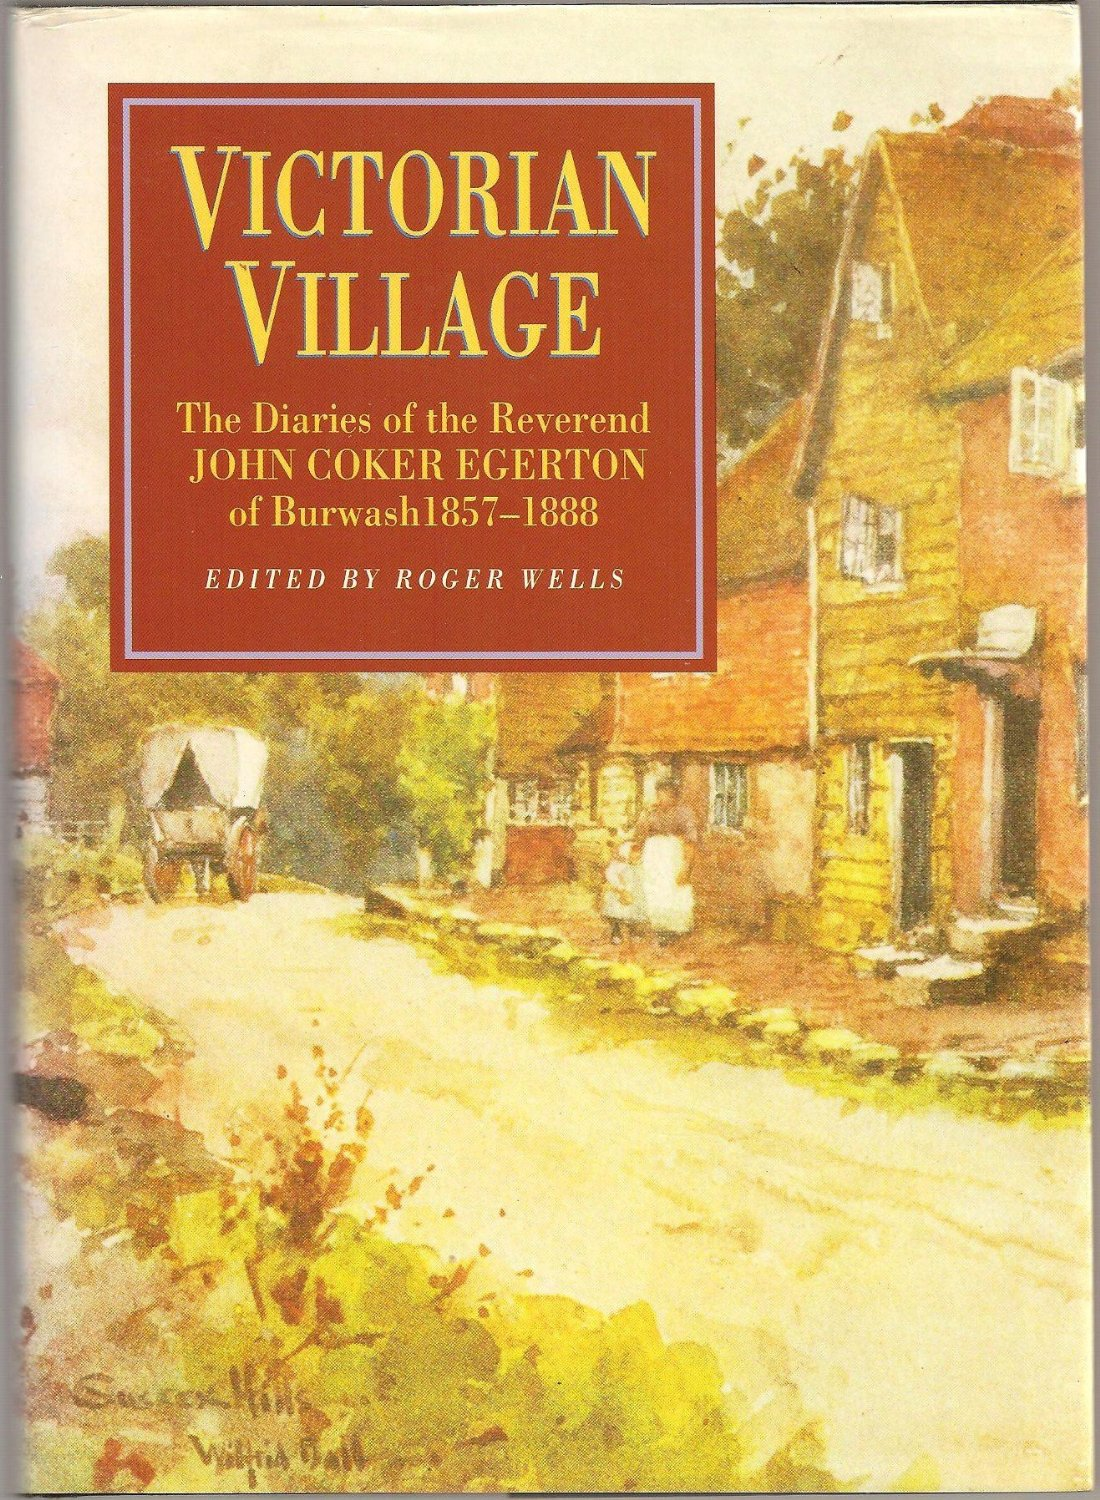 Victorian Village: The diaries of the Reverend John Coker Egerton of Burwash 1857-1888 Book Cover